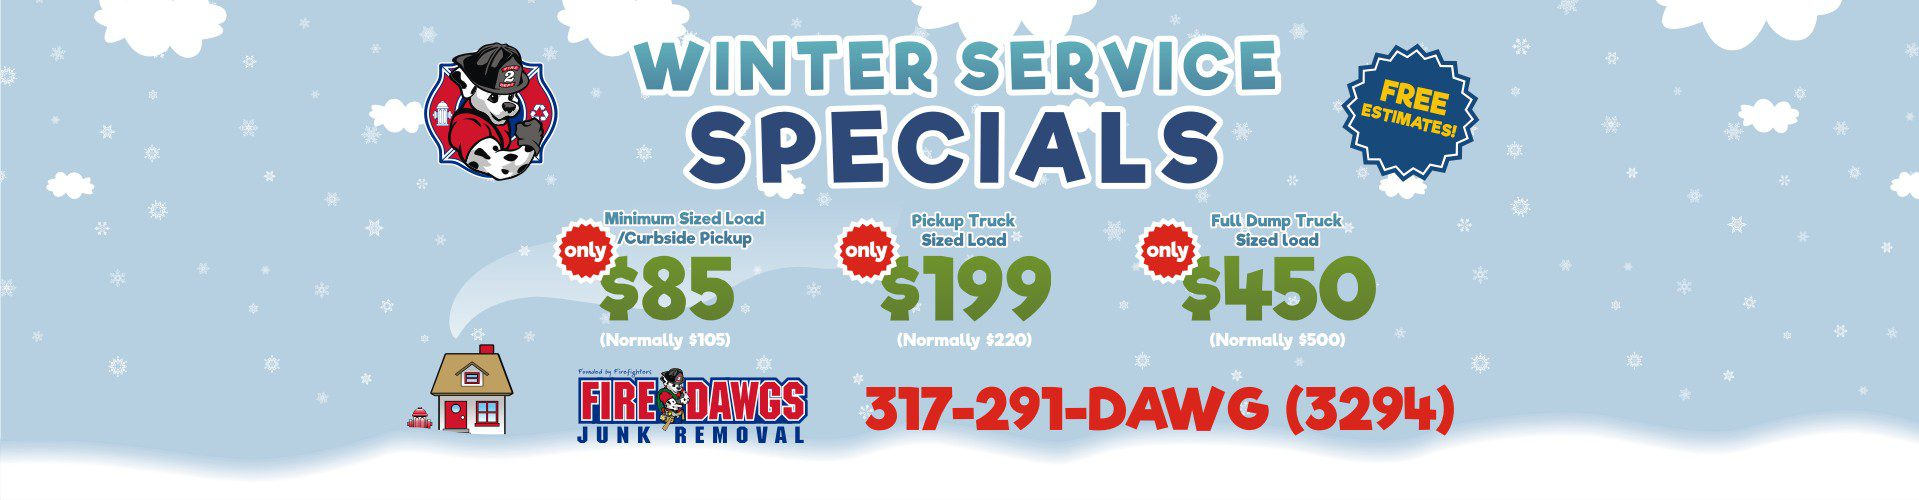 fire dawgs junk removal winter deal